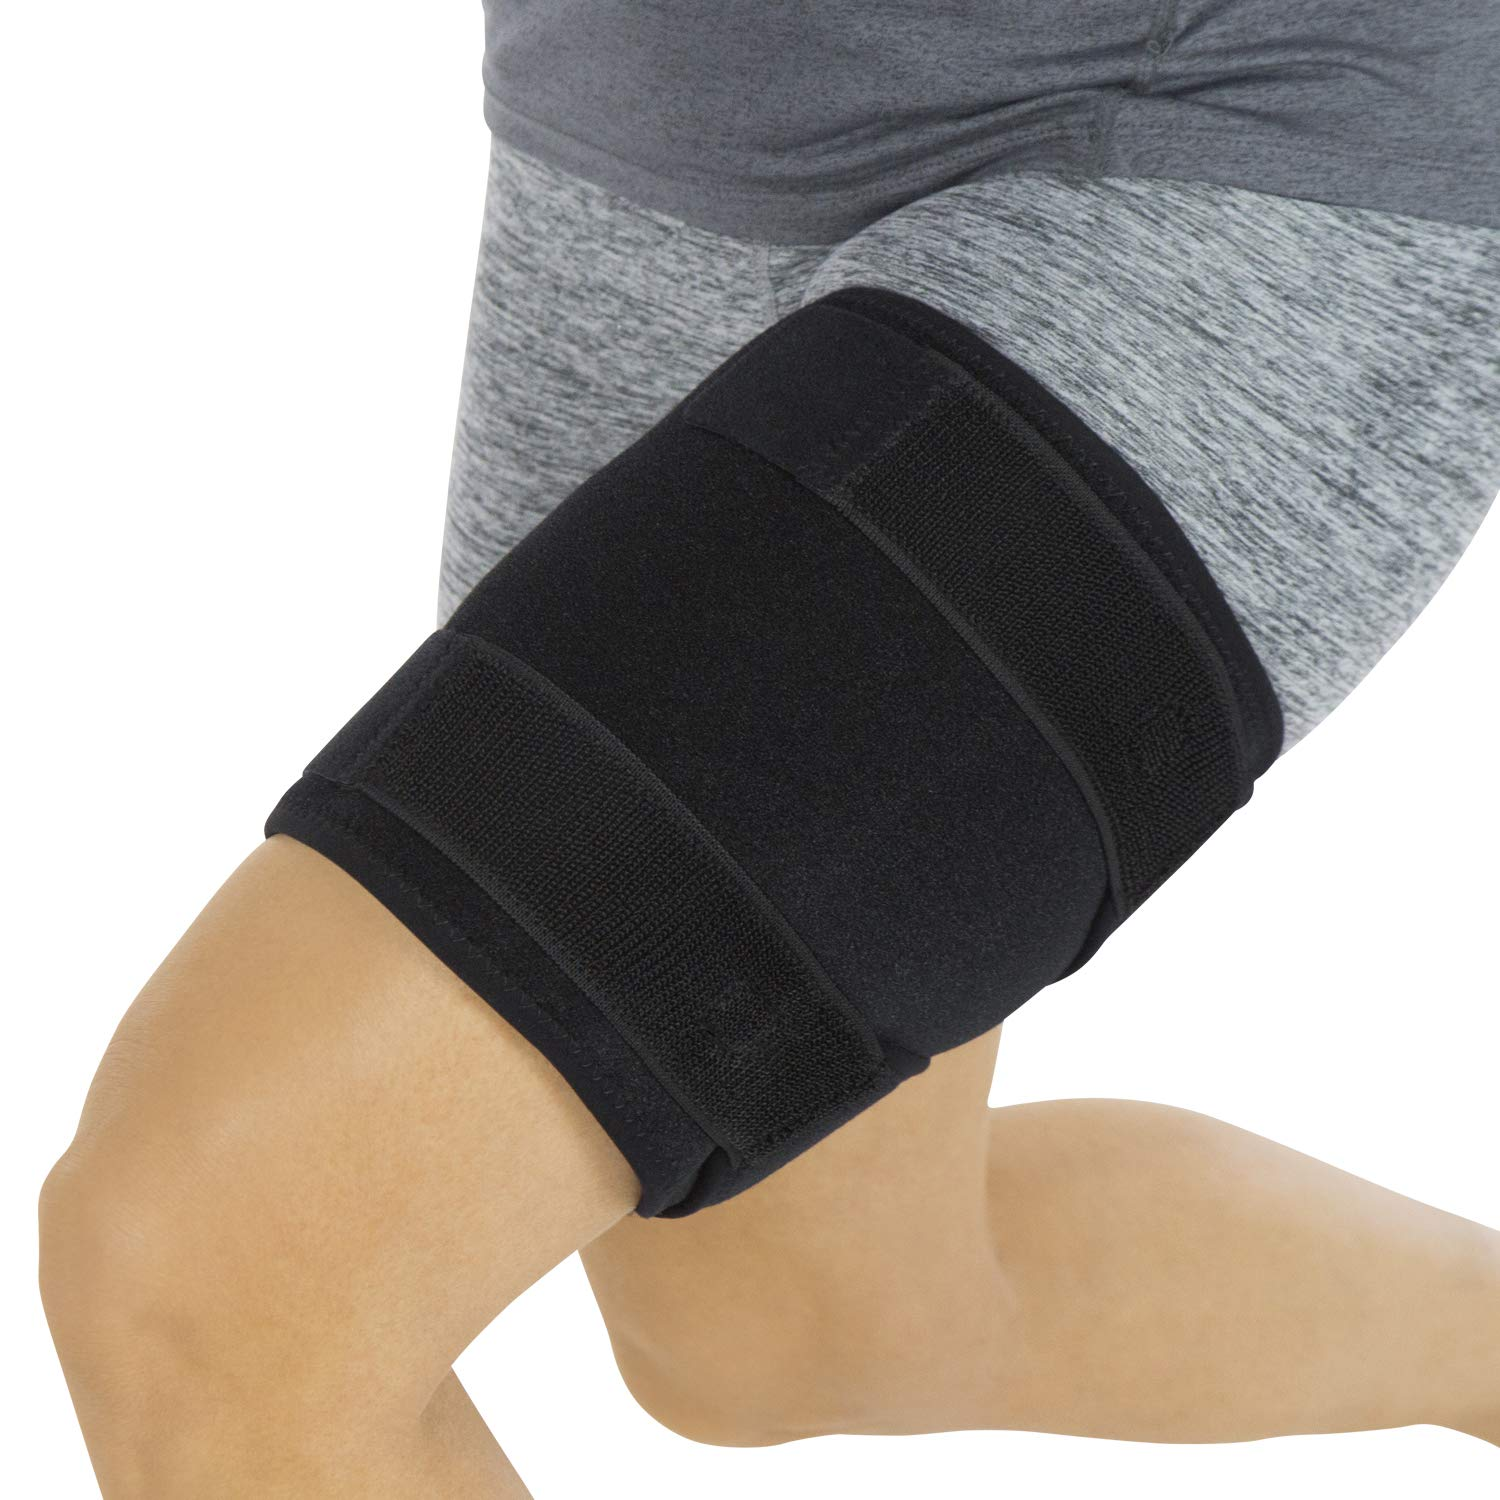 Vive Thigh Brace - Hamstring Quad Wrap - Adjustable Compression Sleeve Support for Pulled Groin Muscle